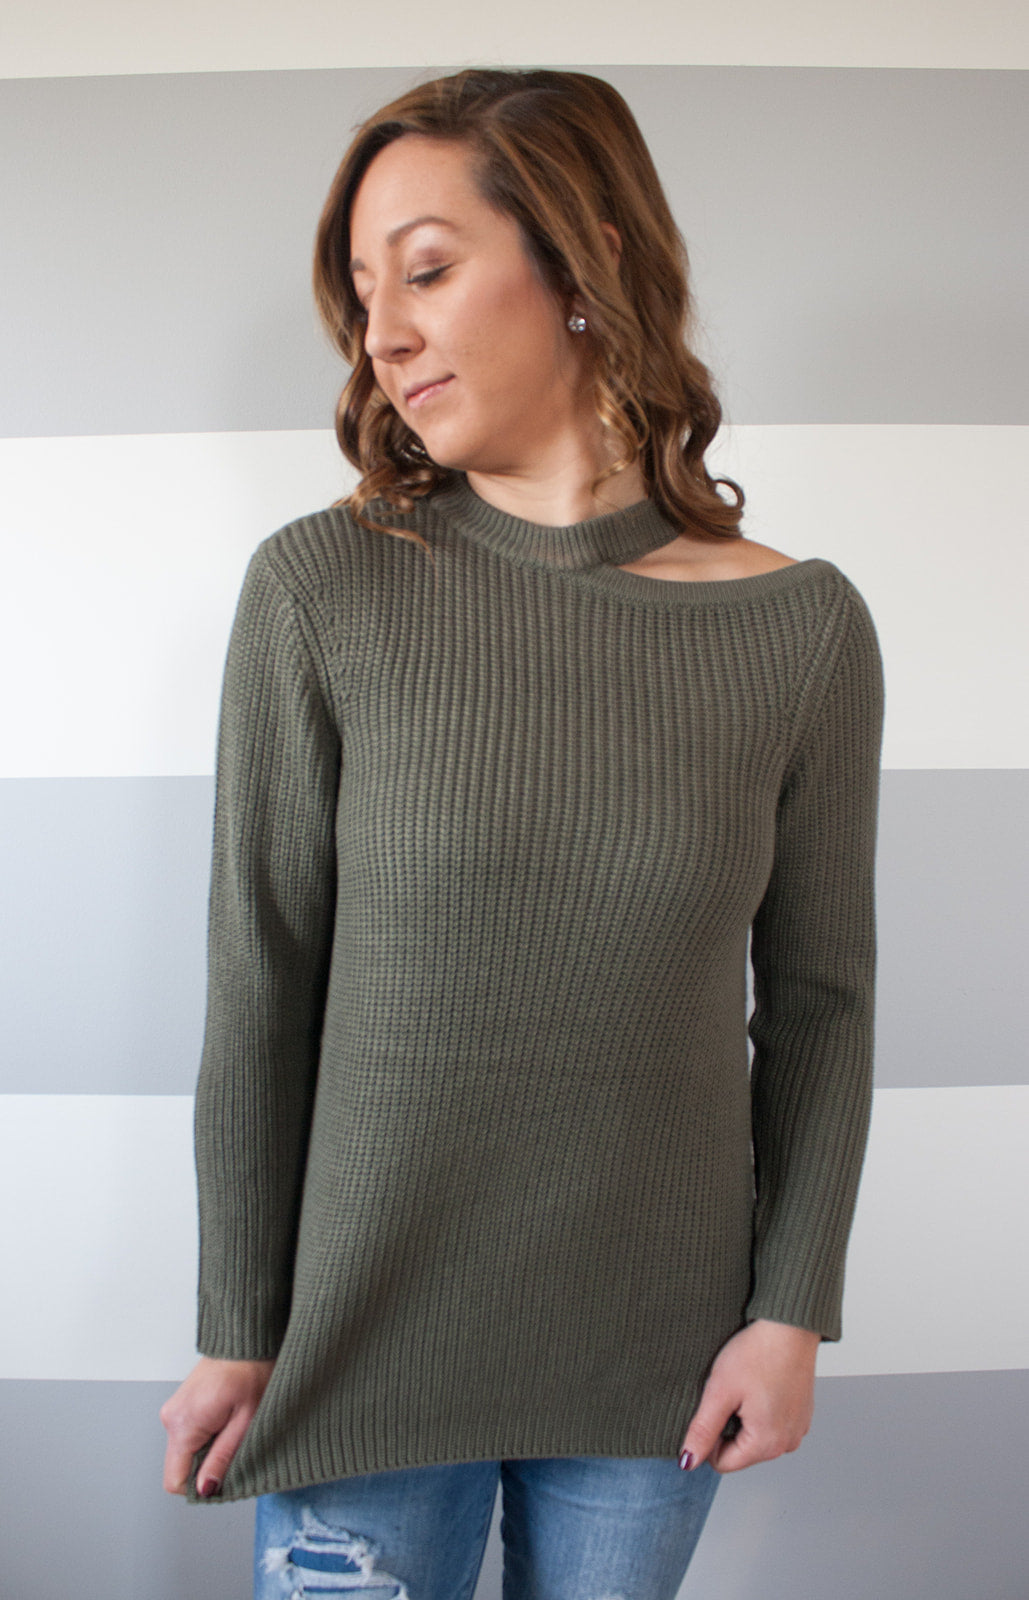 Dusk Till Dawn Sweater